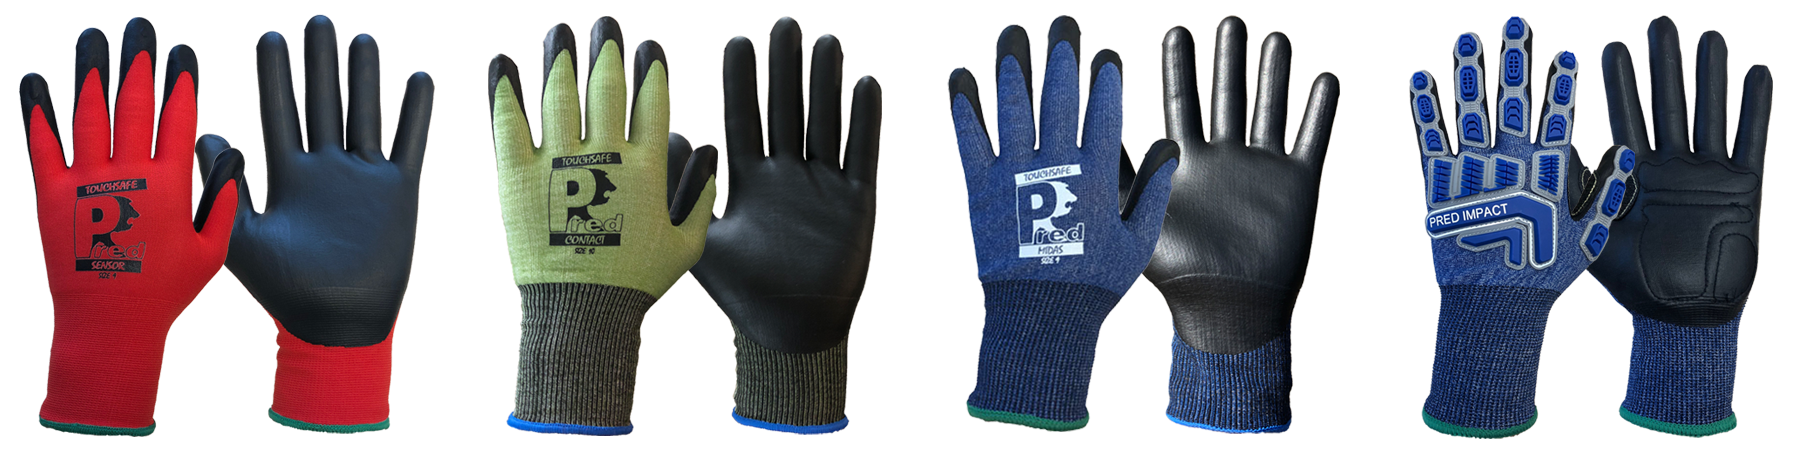 Touchsafe Glove Images